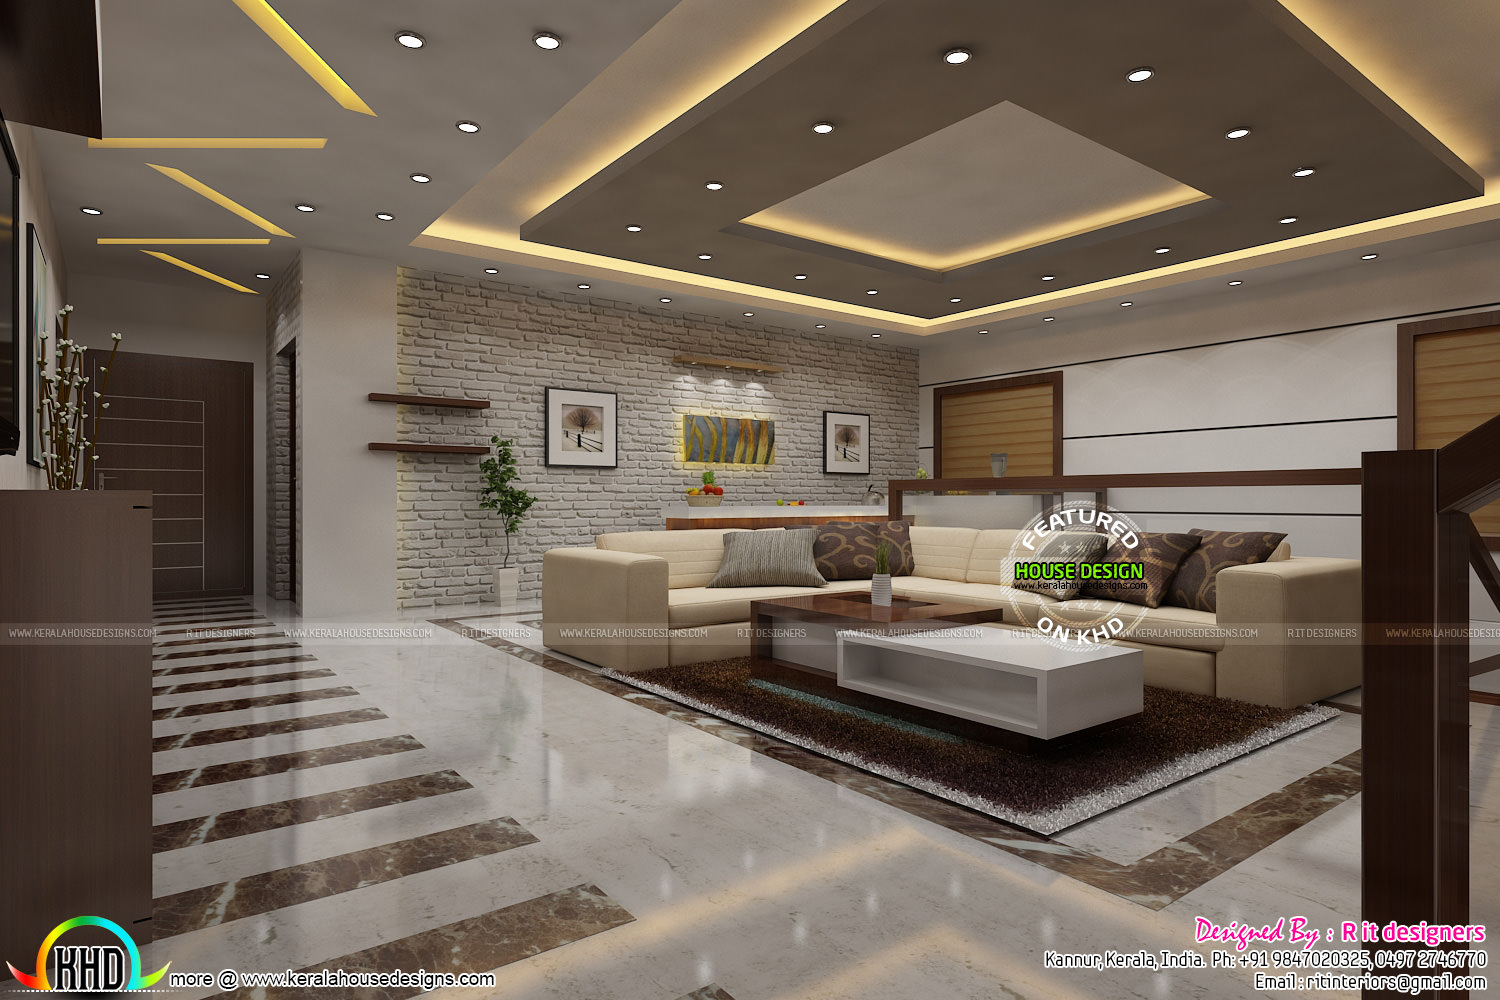 Most modern kerala living room interior kerala home for New model house interior design